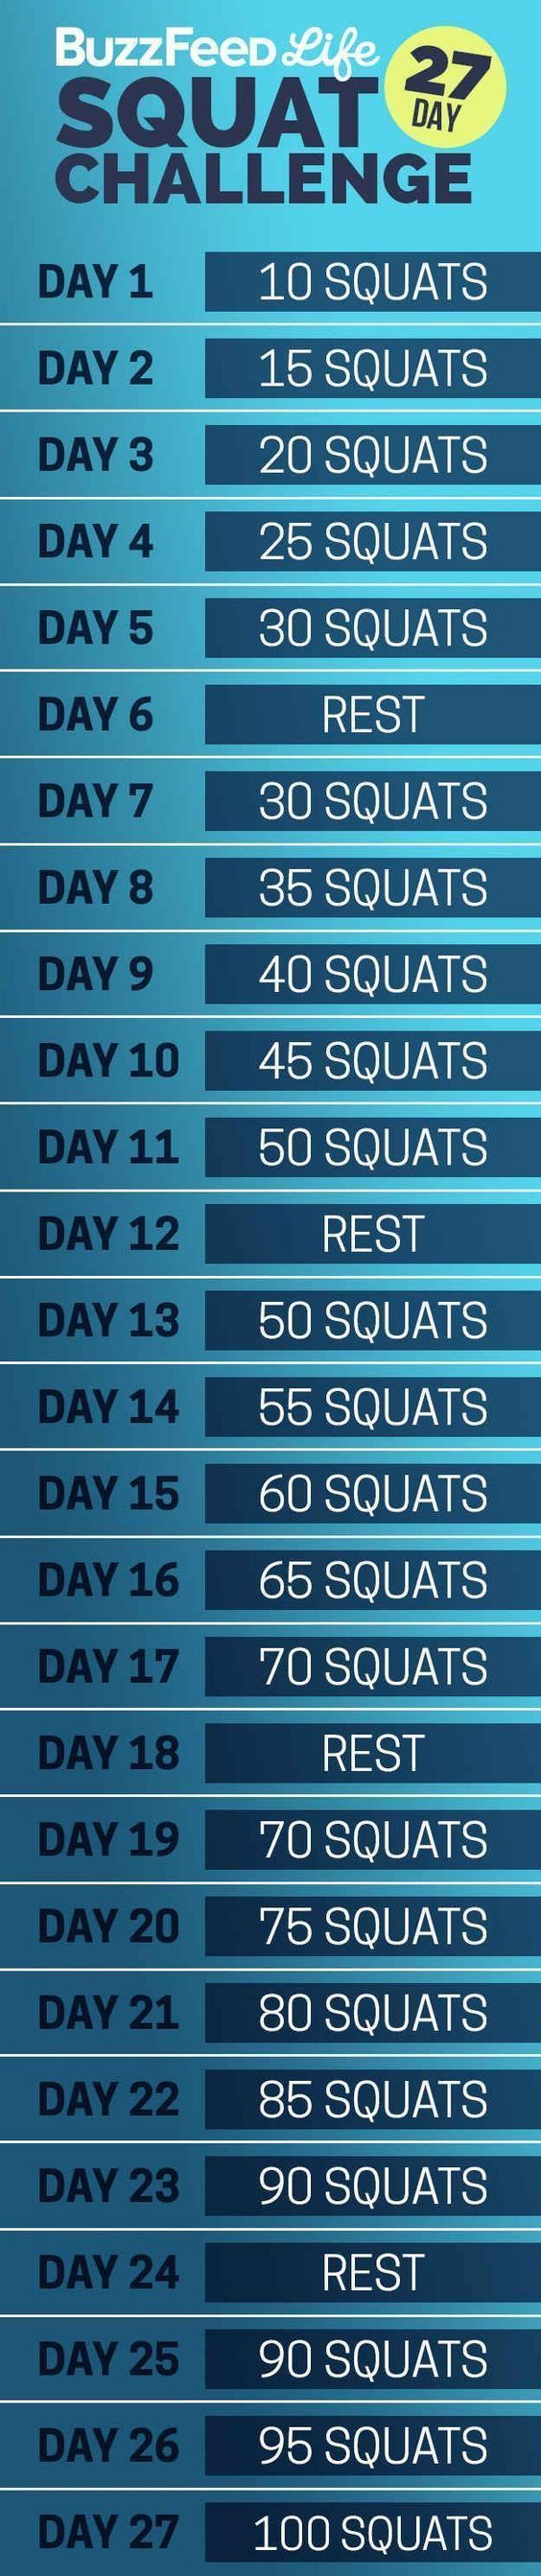 Work your way up to doing 100 squats in about a month! This great exercise stren... Work your way u